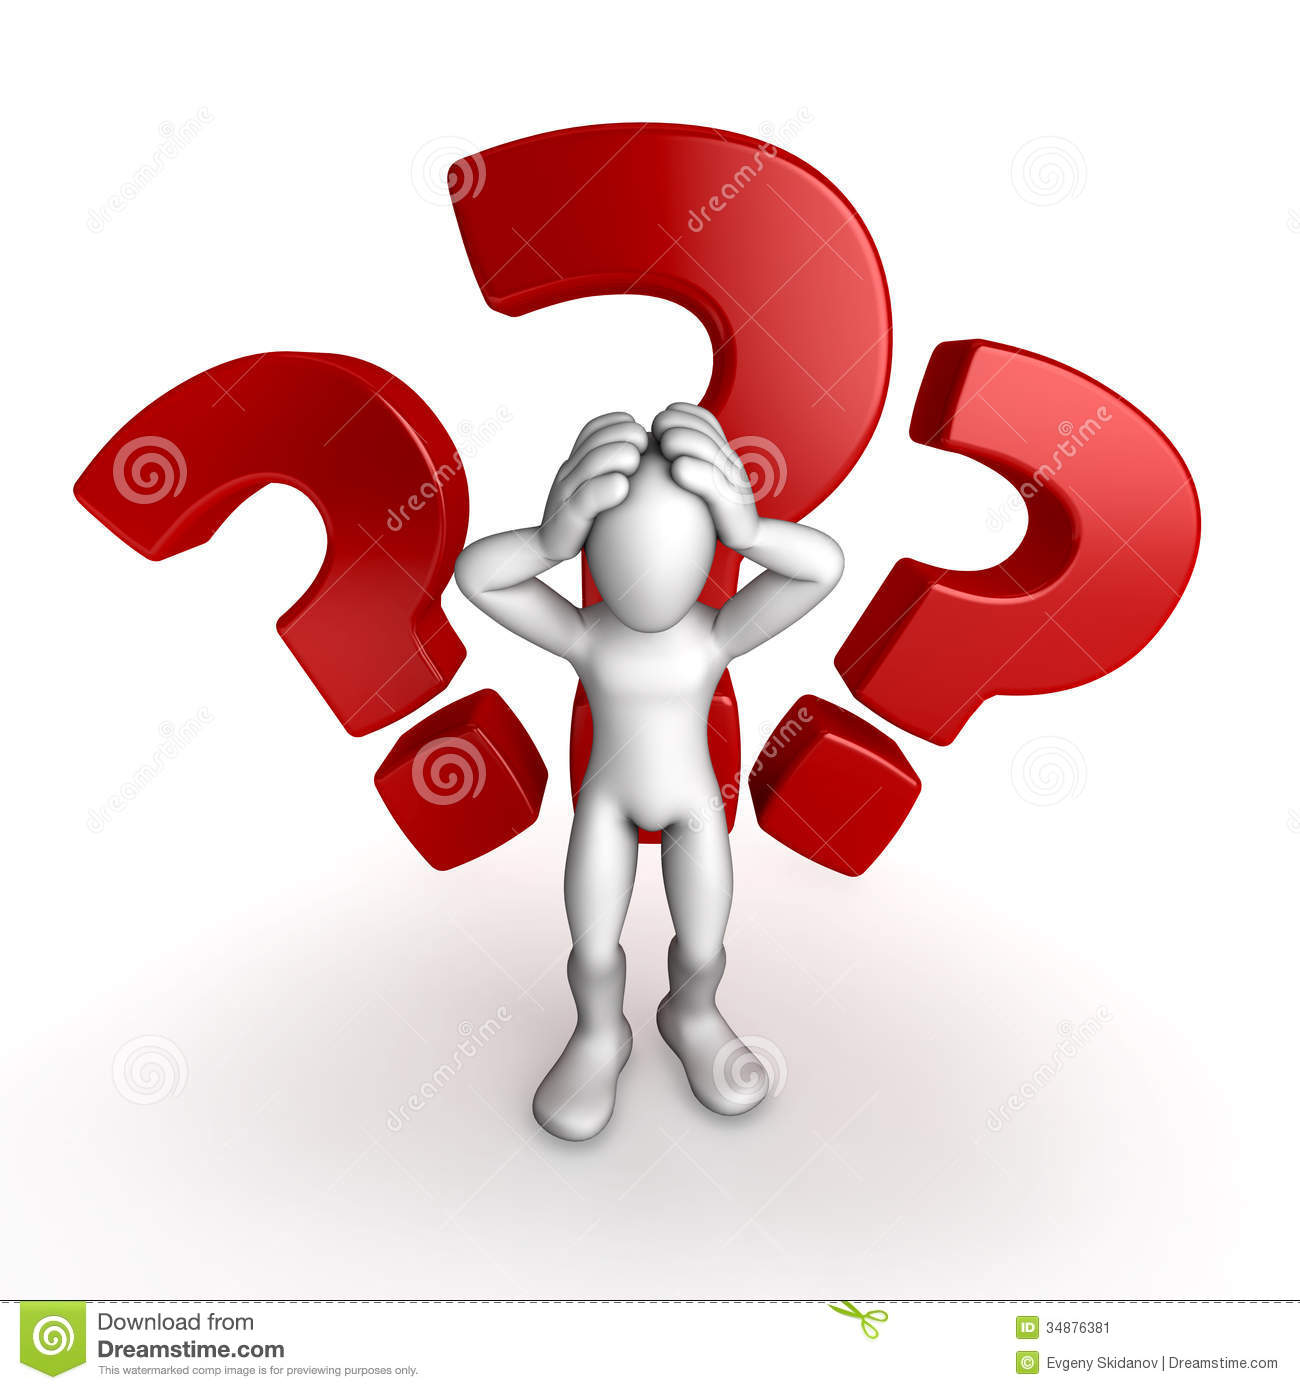 Question Signs And Human Illustration / Stock Image - Image: 34876381